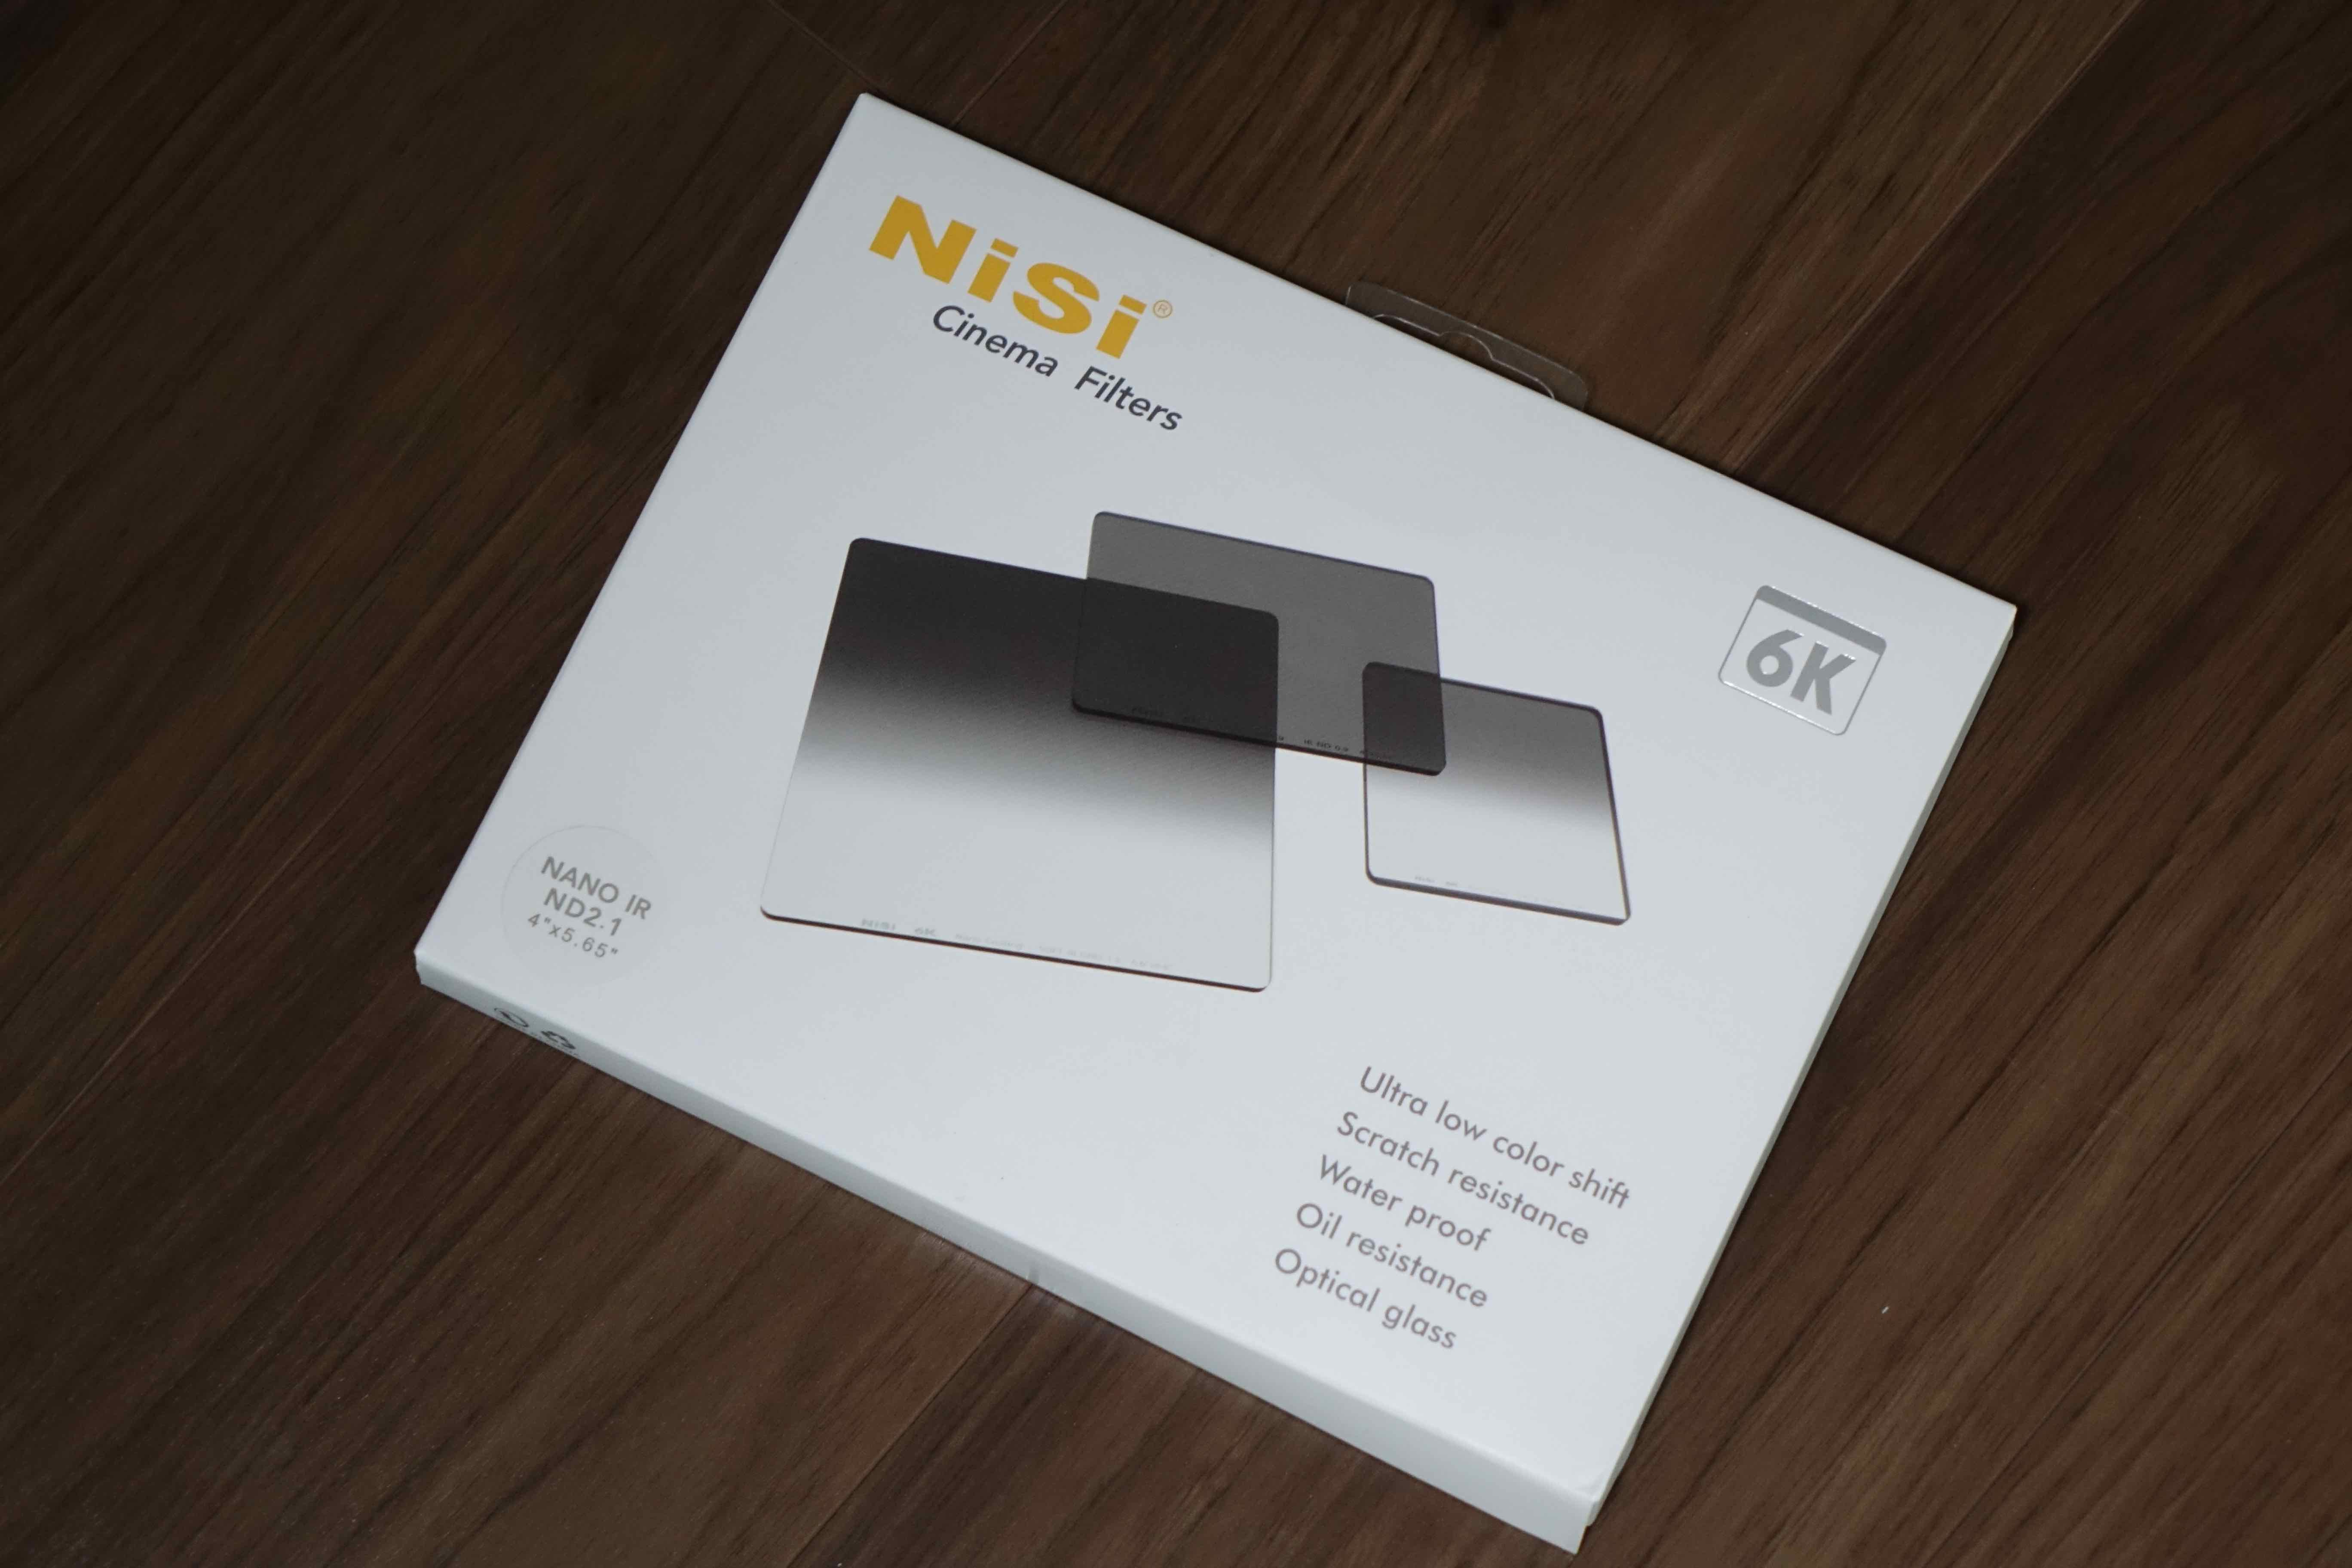 Ever Heard Of Nisi We Test The Latest Neutral Density Filters From Filter Kit For Phantom 4 Pro When It Comes To Everyone Is Familiar With Brands Such As Tiffen And Schneider But There Are A Lot Other Companies Out Flying Under